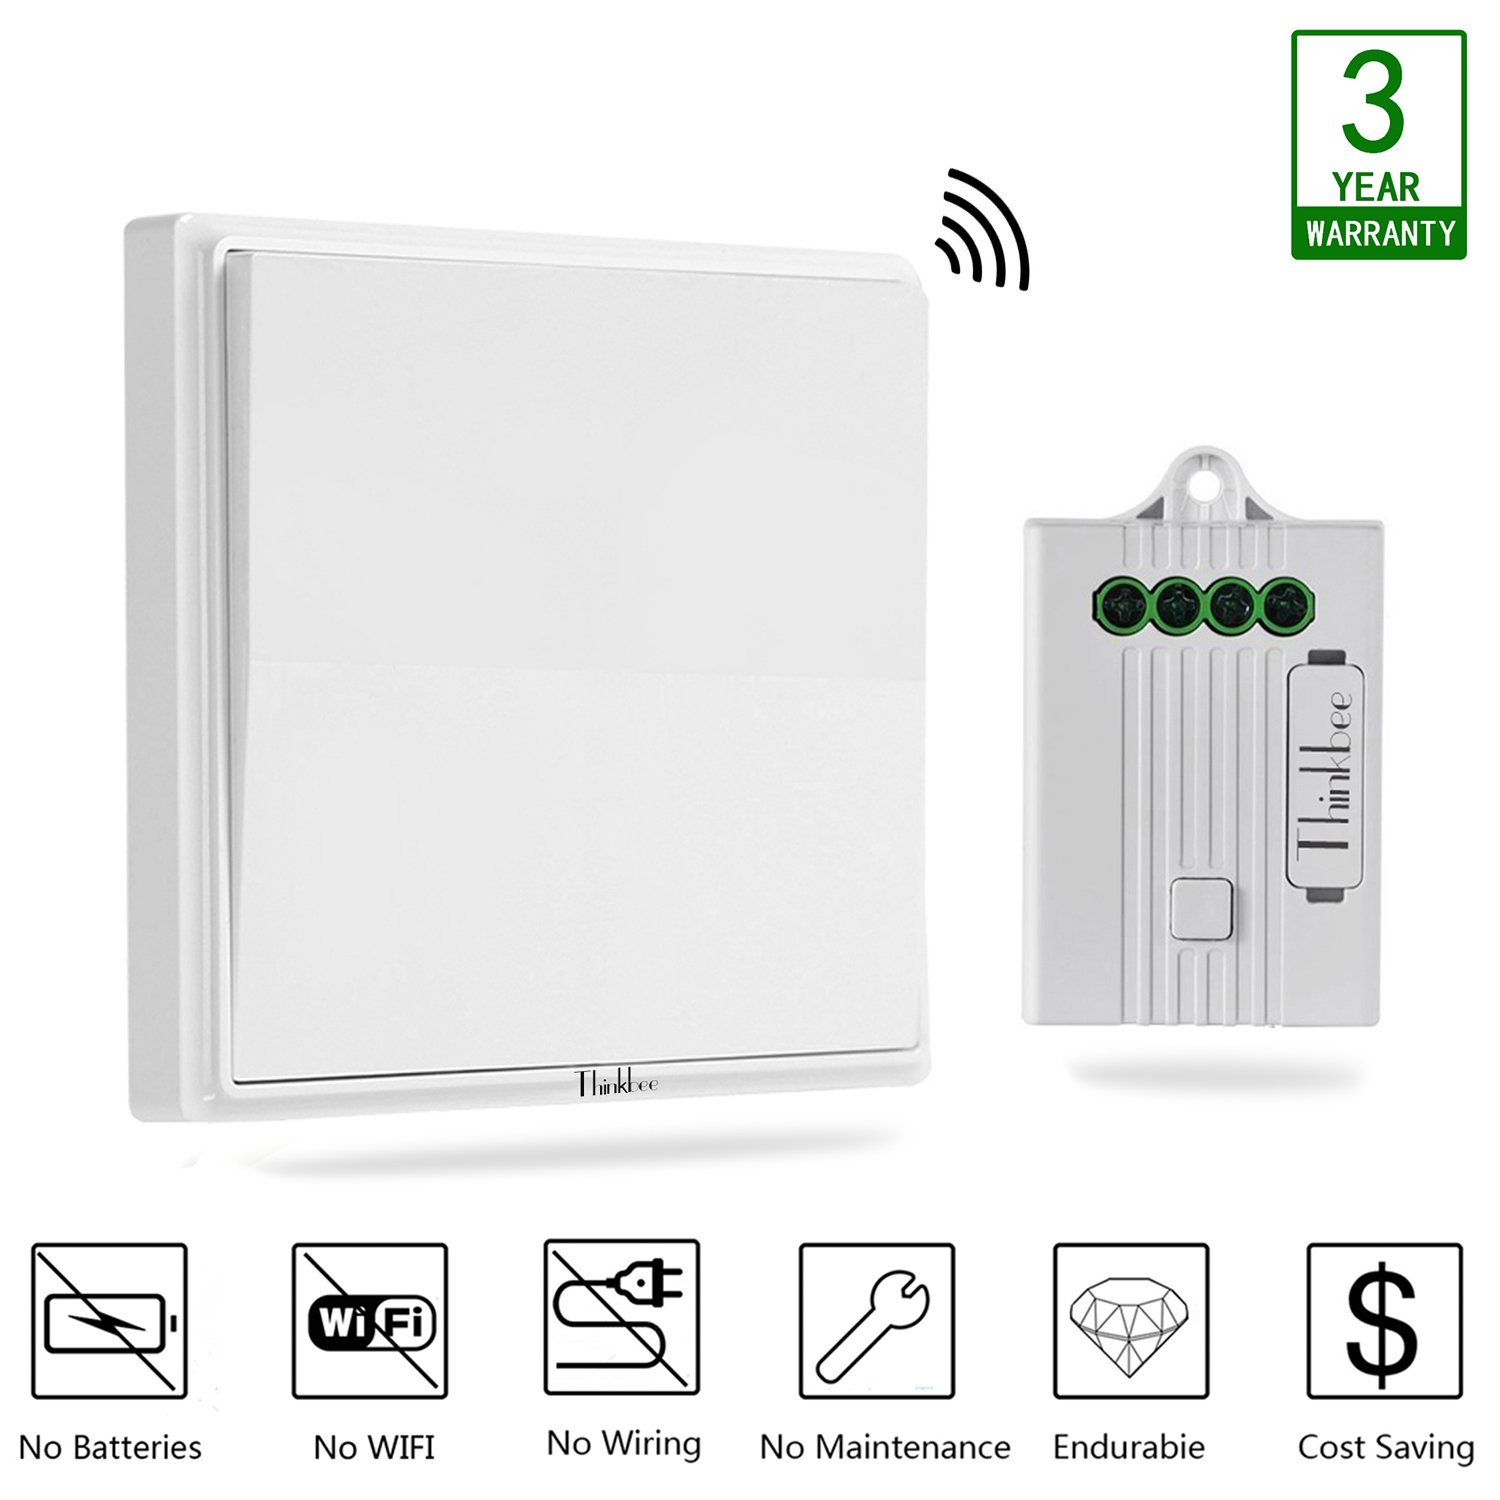 Thinkbee Wireless Light Switch Kit No Battery Wiring Wifi Two Switches To One Besides Ceiling Fan Diagram Required Easy Install On Off Self Powered Kinetic Remote Controlled And